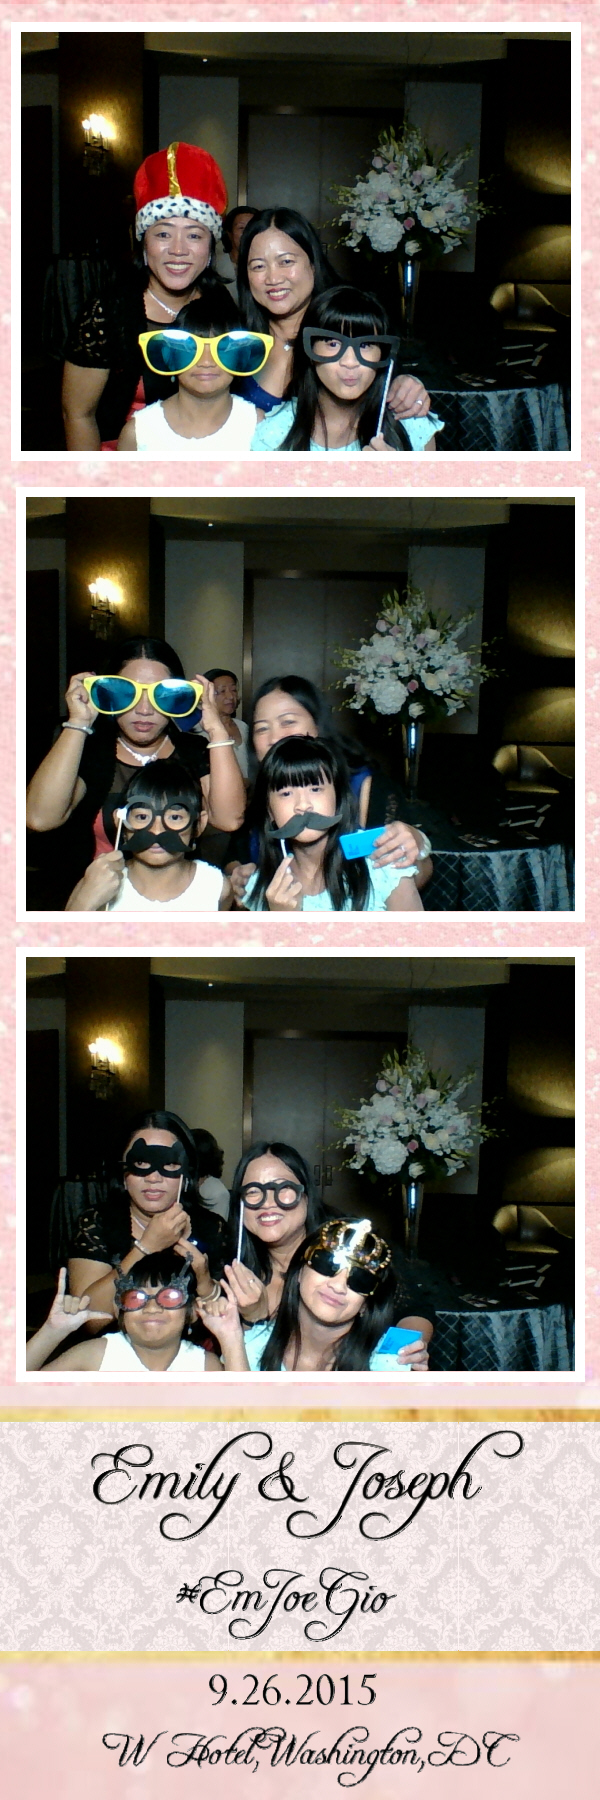 Guest House Events Photo Booth E&J (43).jpg